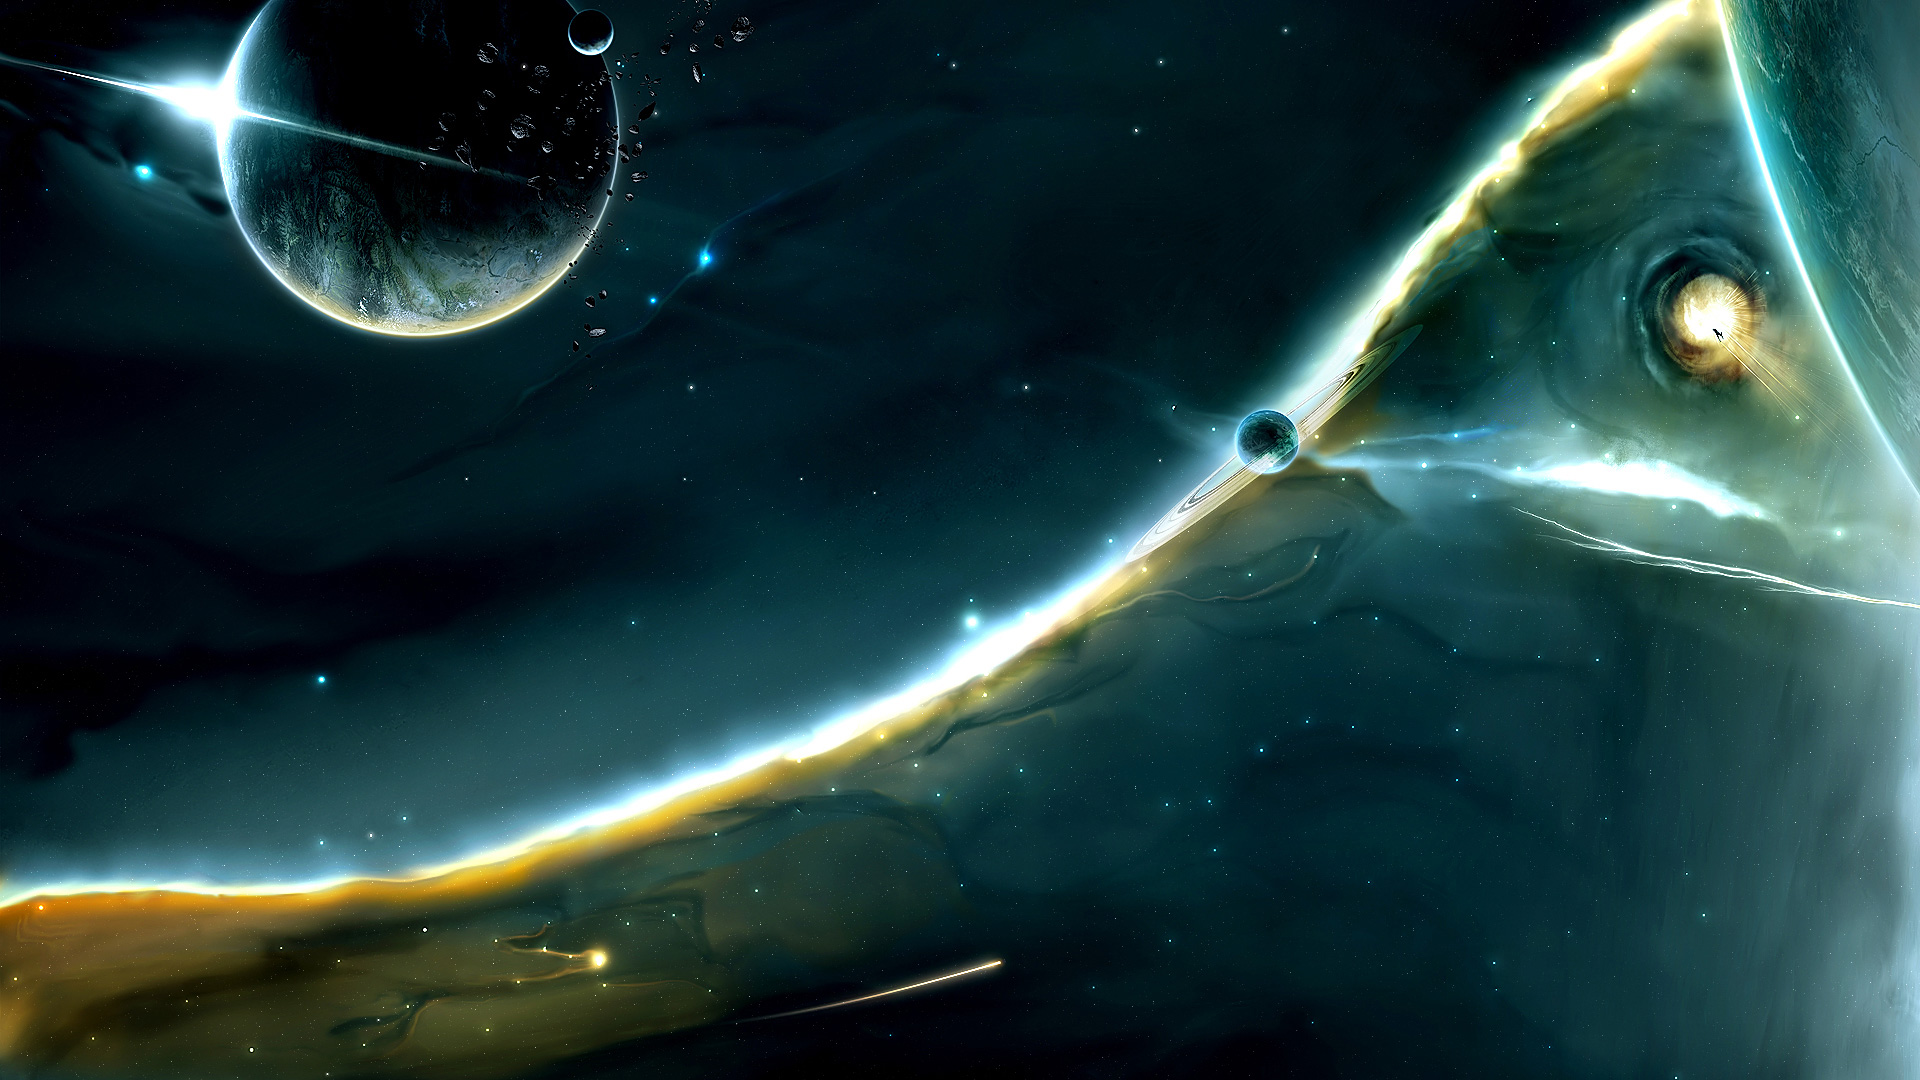 1080p Digital Universe HD Wallpapers HD Wallpapers 1920x1080